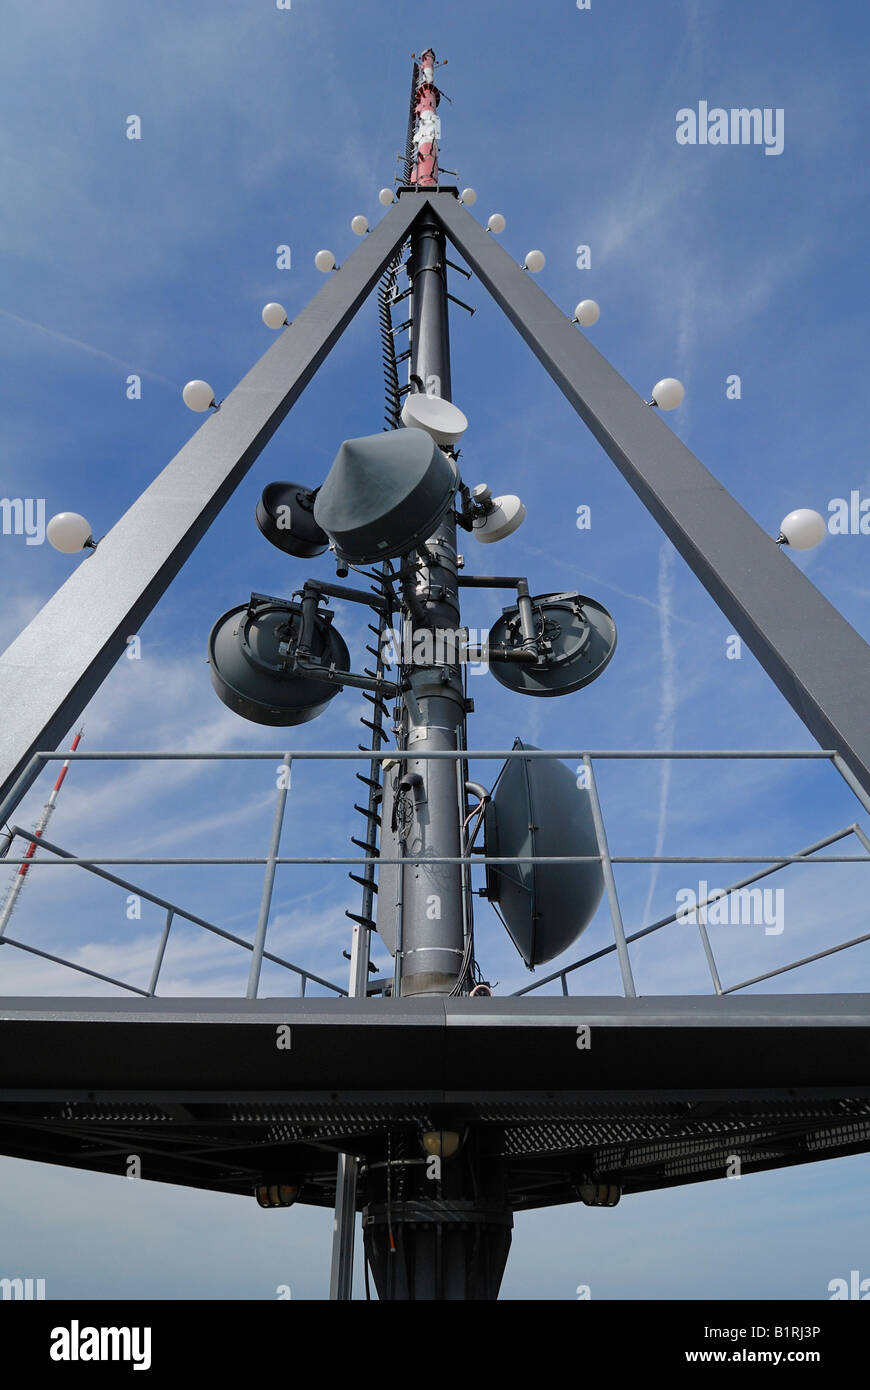 Transmitter mast on the Uetliberg Tower, Zuerich, Canton of Zuerich, Switzerland, Europe - Stock Image